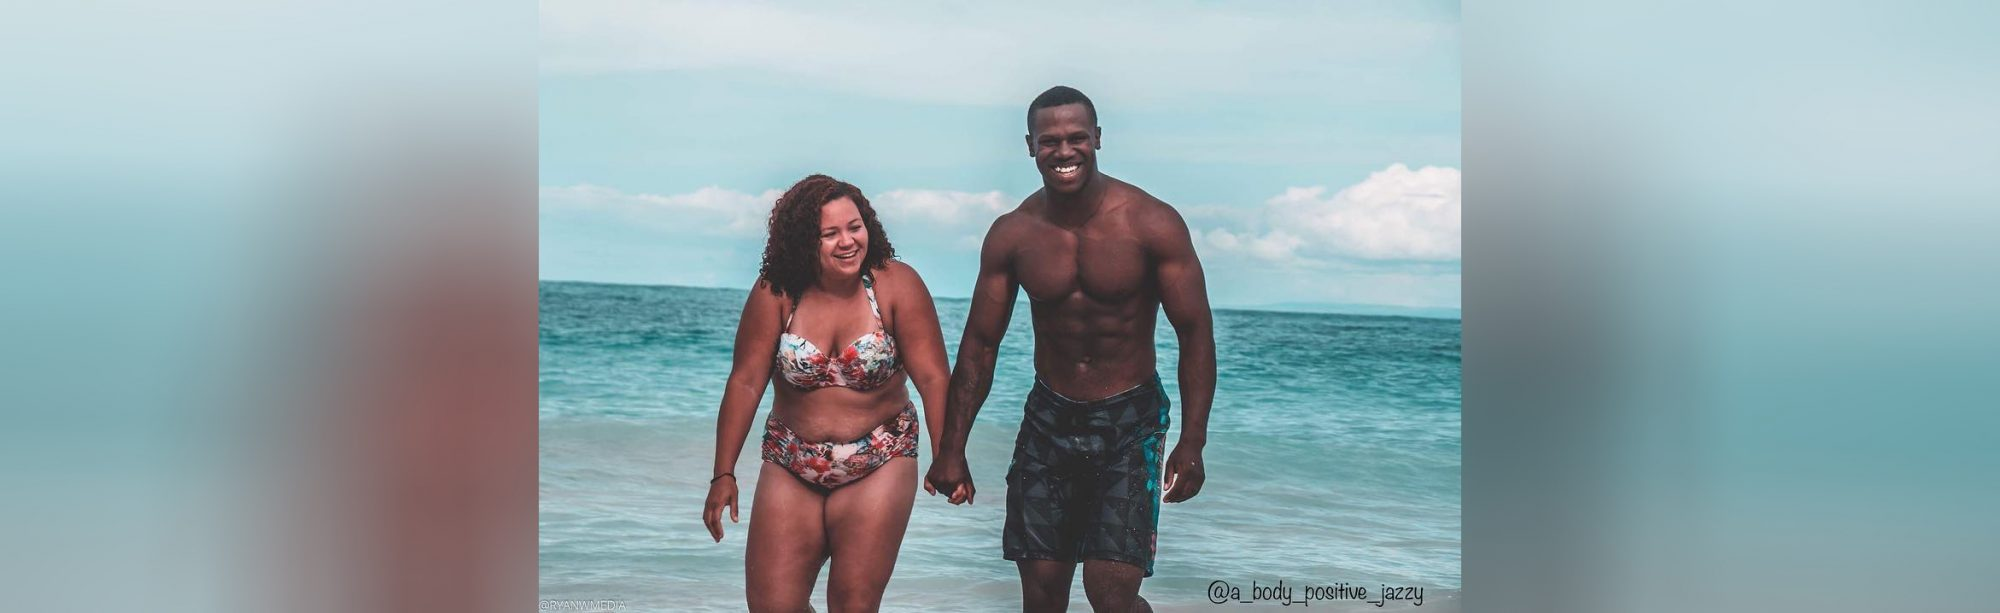 jazzie-owens-couple-beach